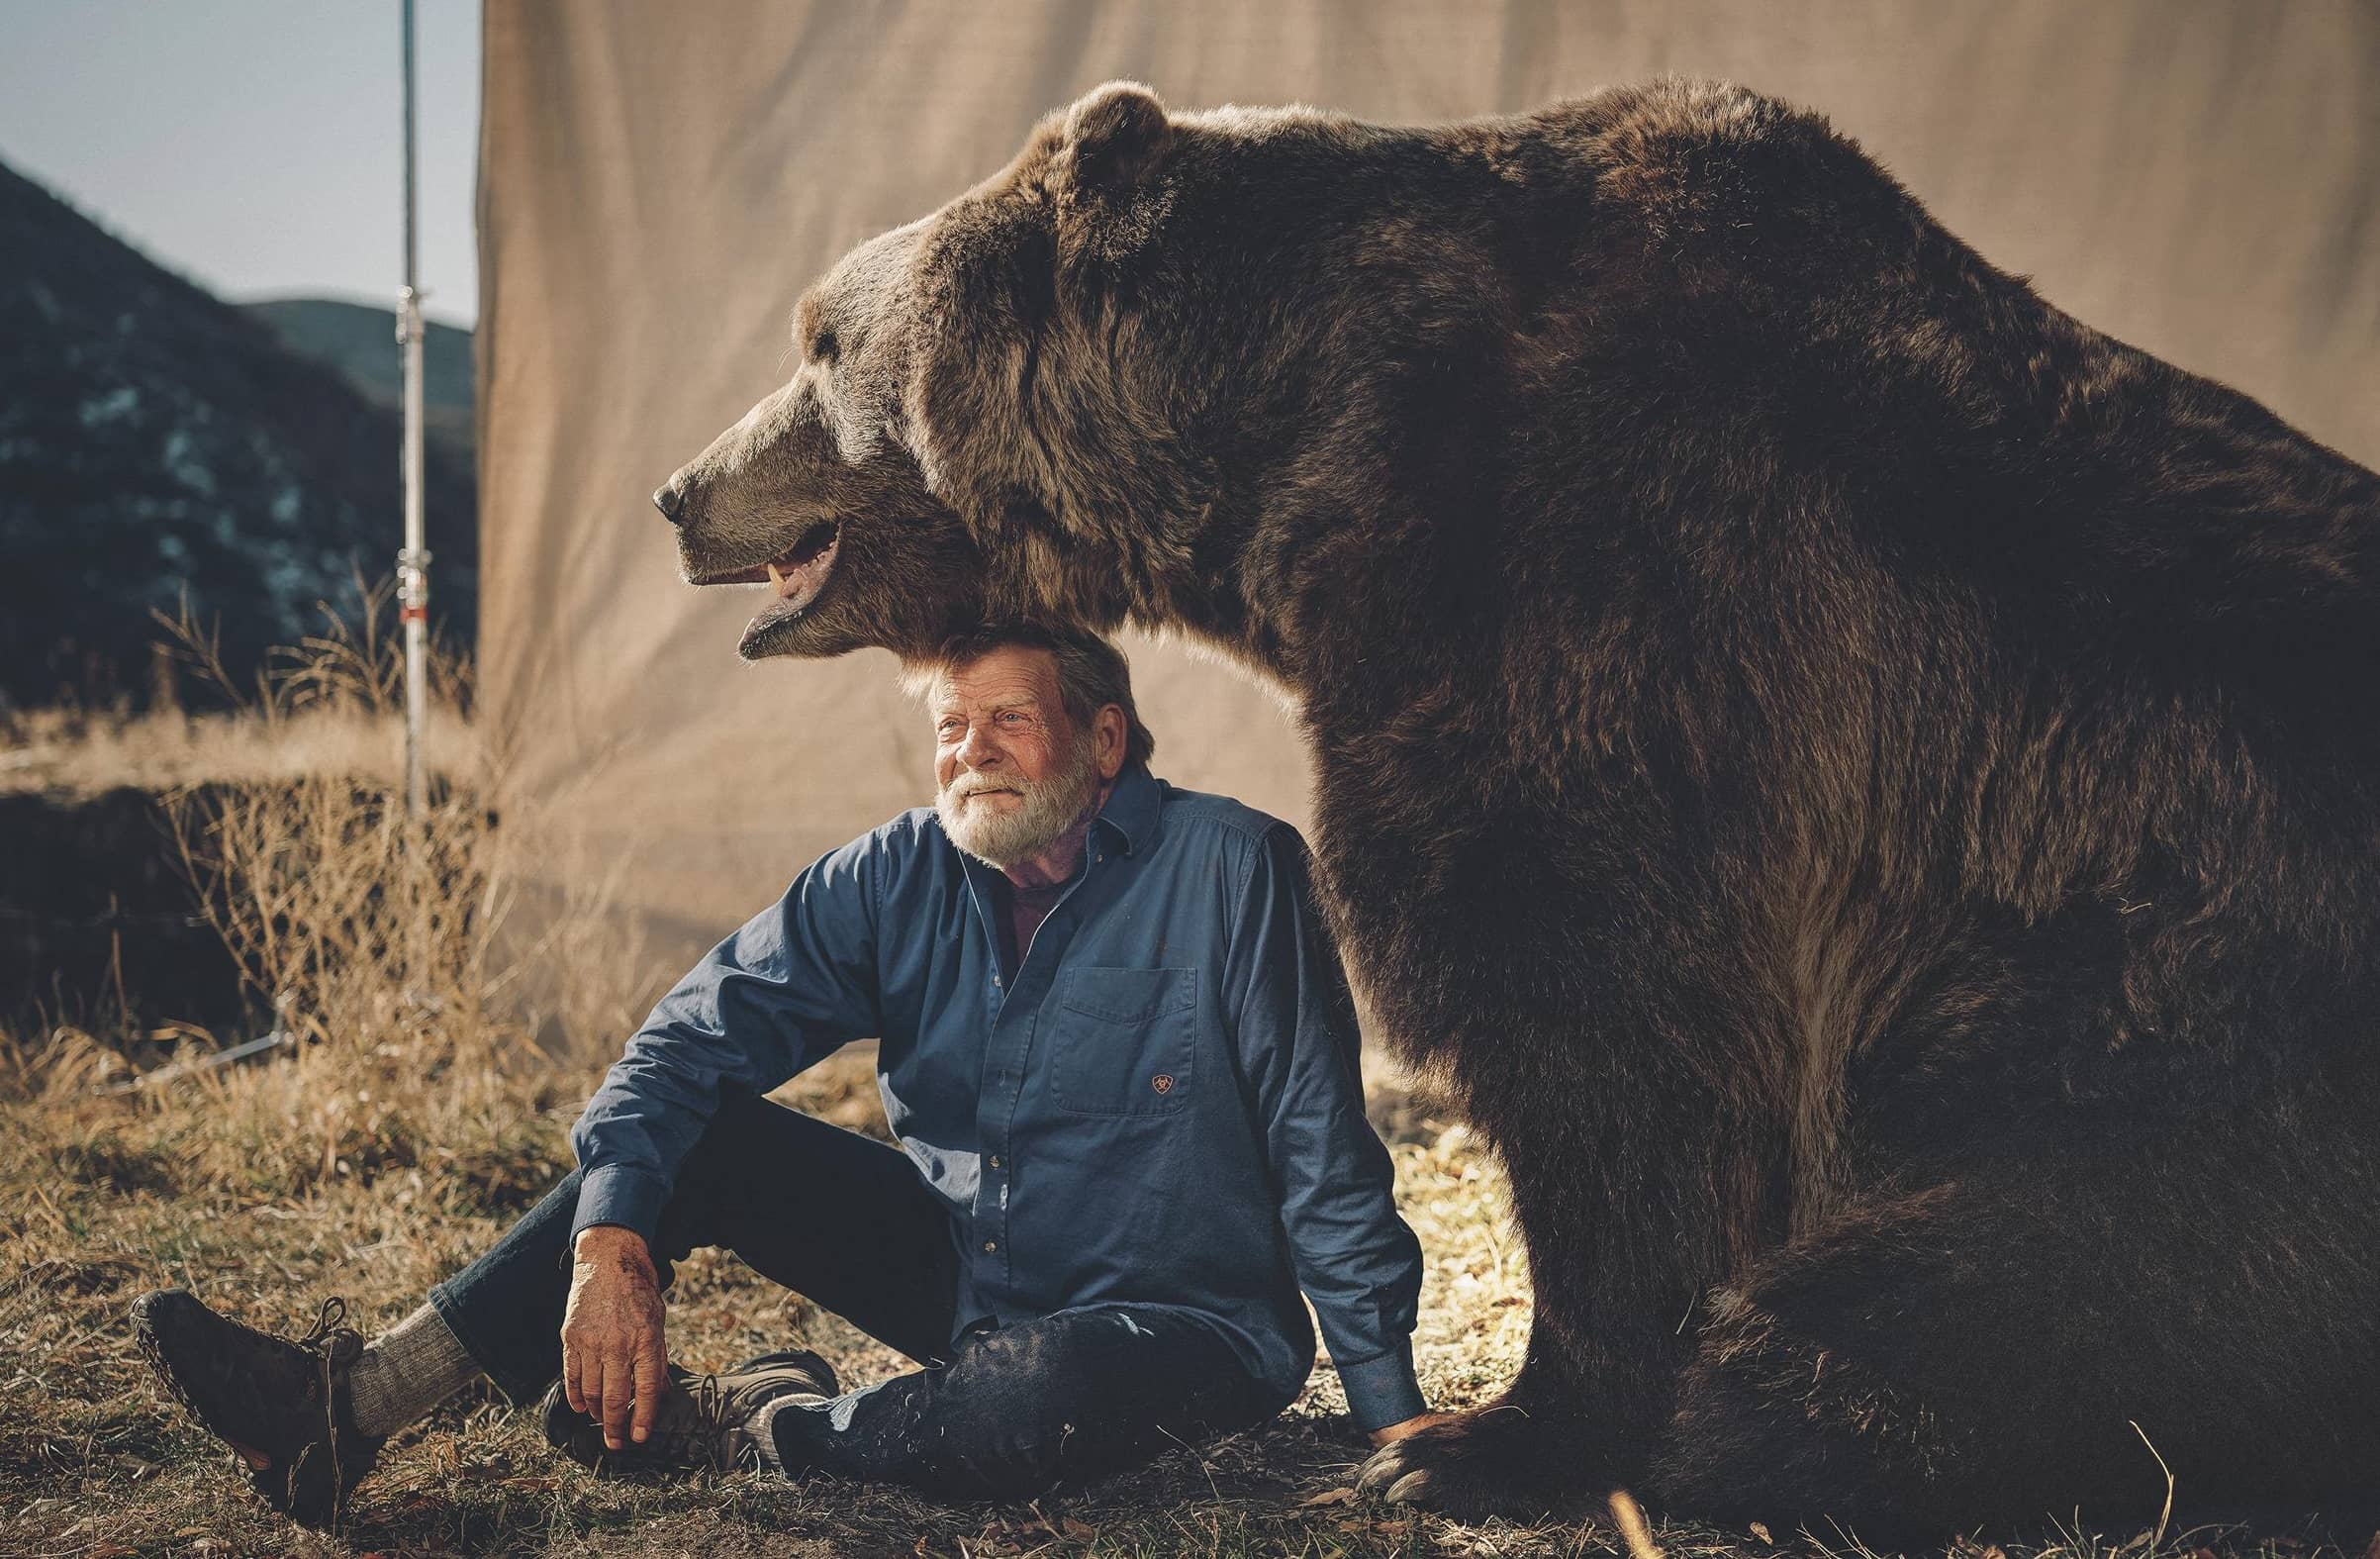 The Bear Whisperer